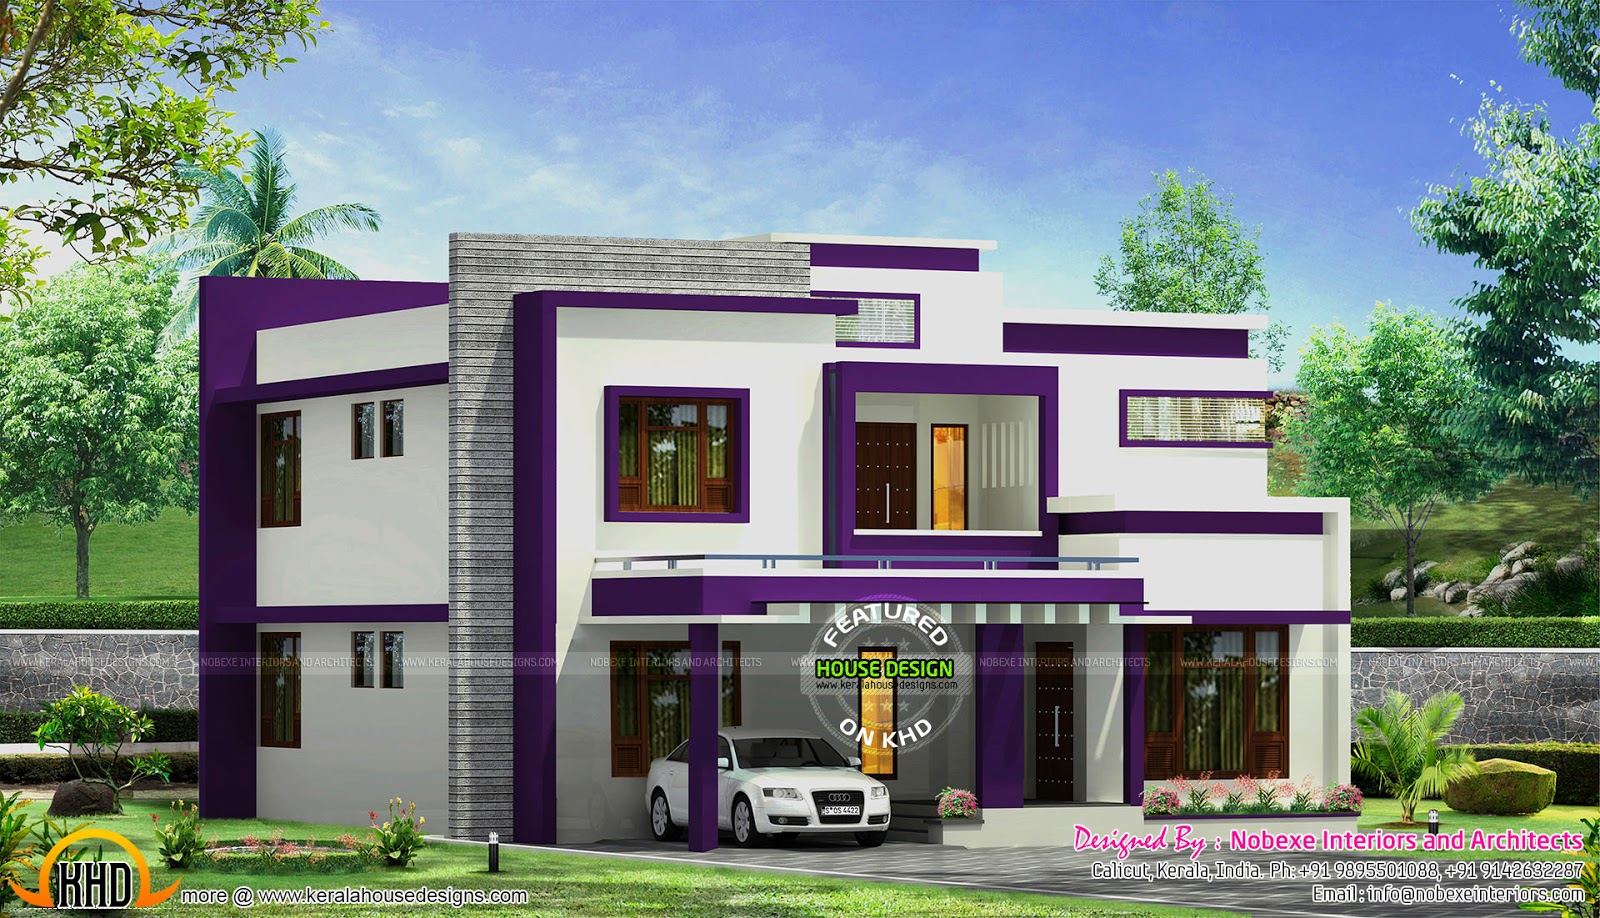 Home Design By Nobexe Interiors Kerala Home Design And Floor Plans